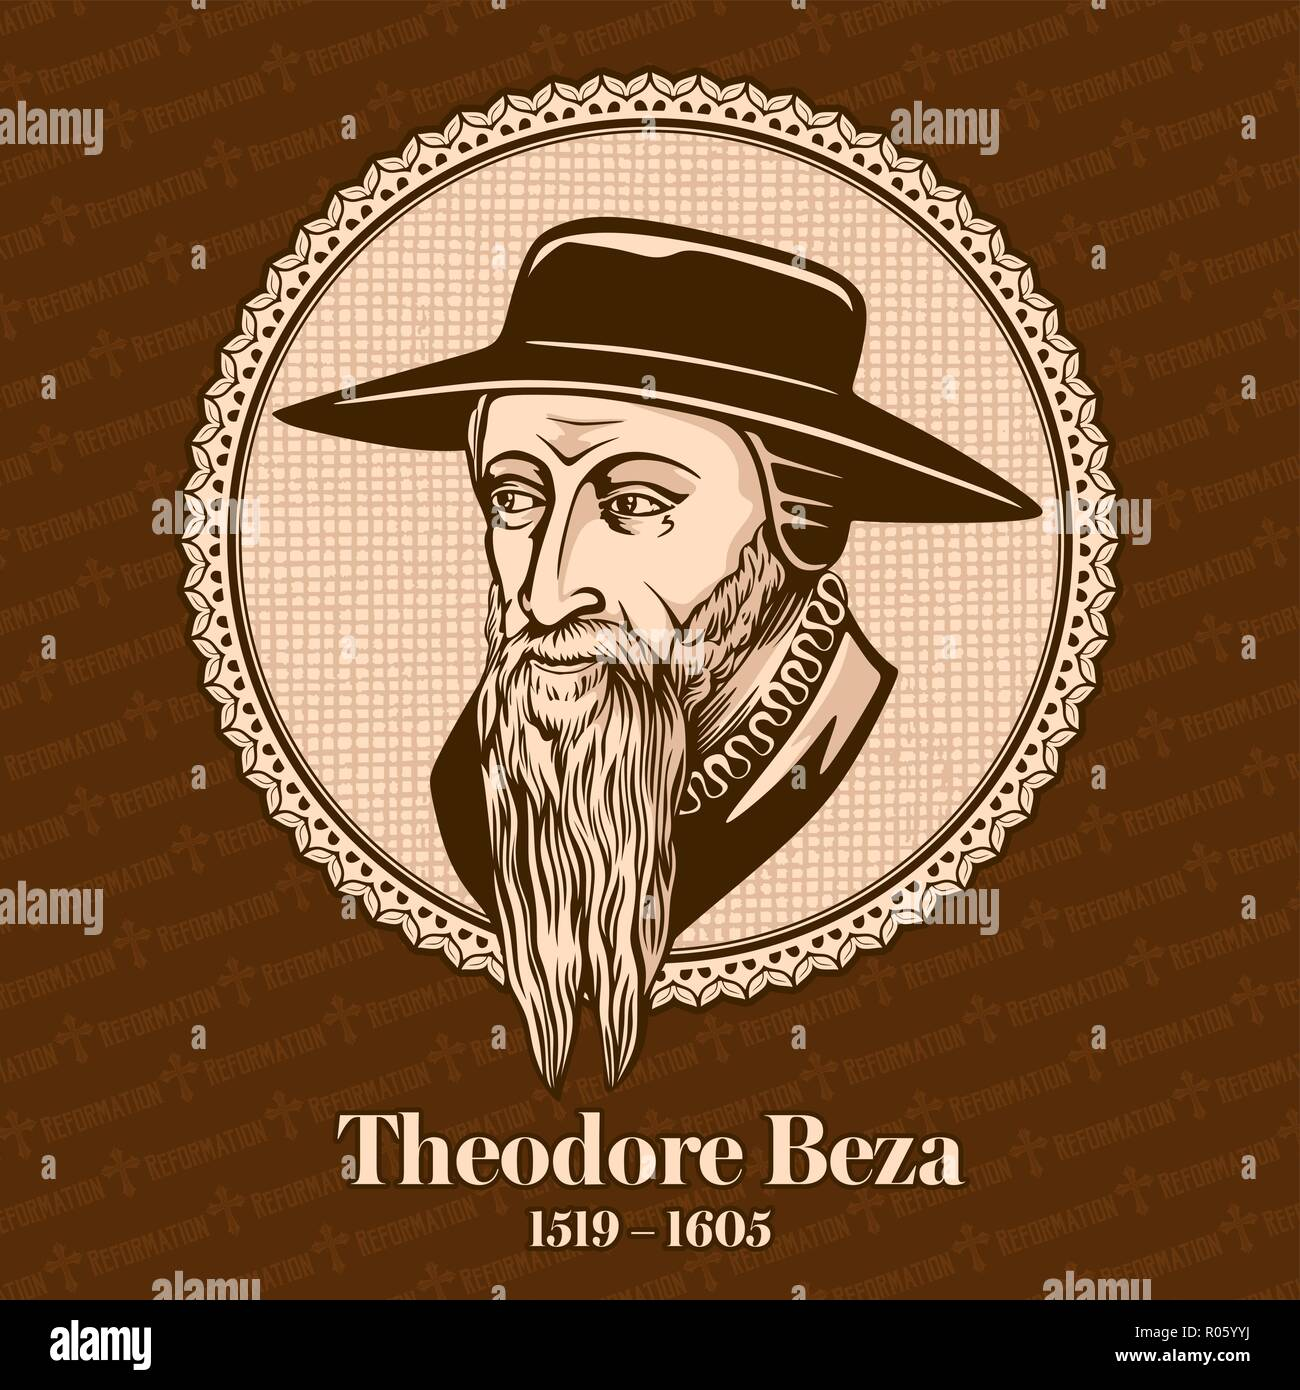 Theodore Beza (1519 – 1605) was a French Reformed Protestant theologian, reformer and scholar who played an important role in the Reformation. - Stock Image